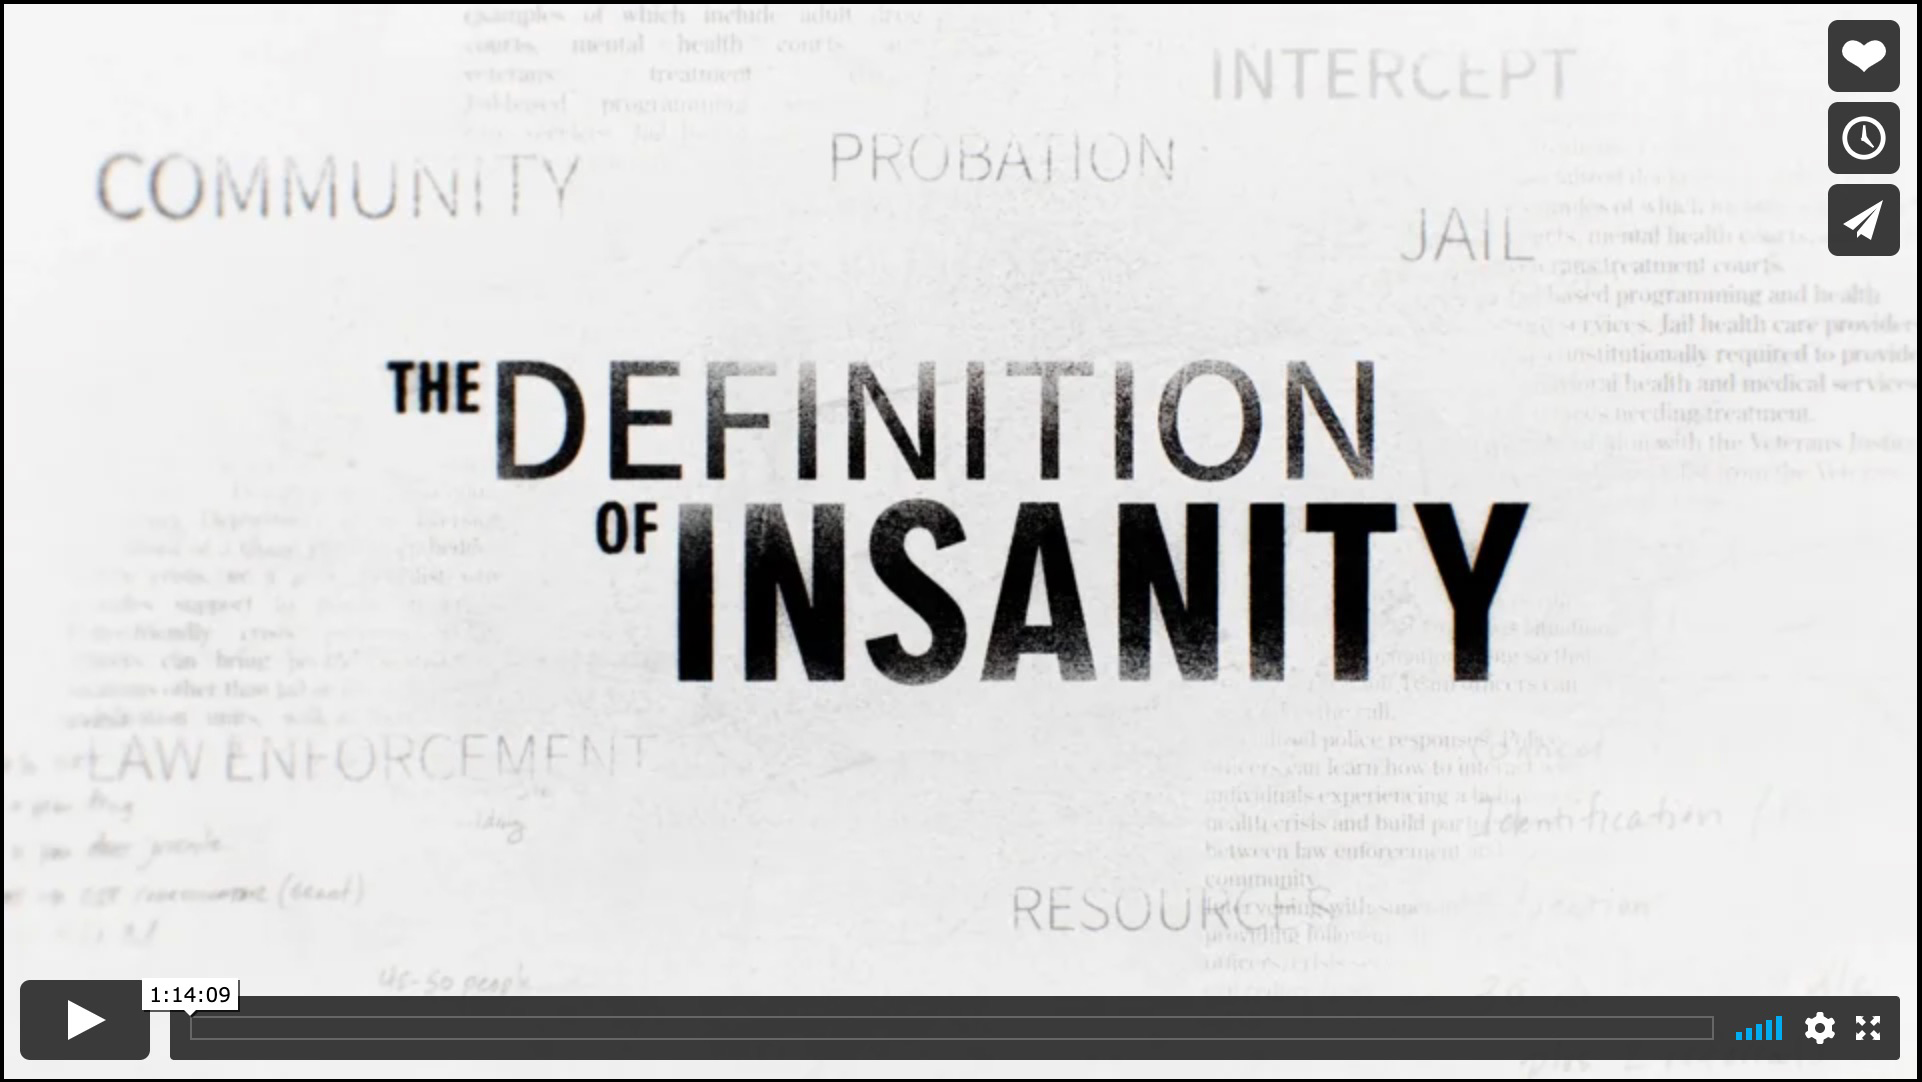 Image from documentary film The Definition of Insanity